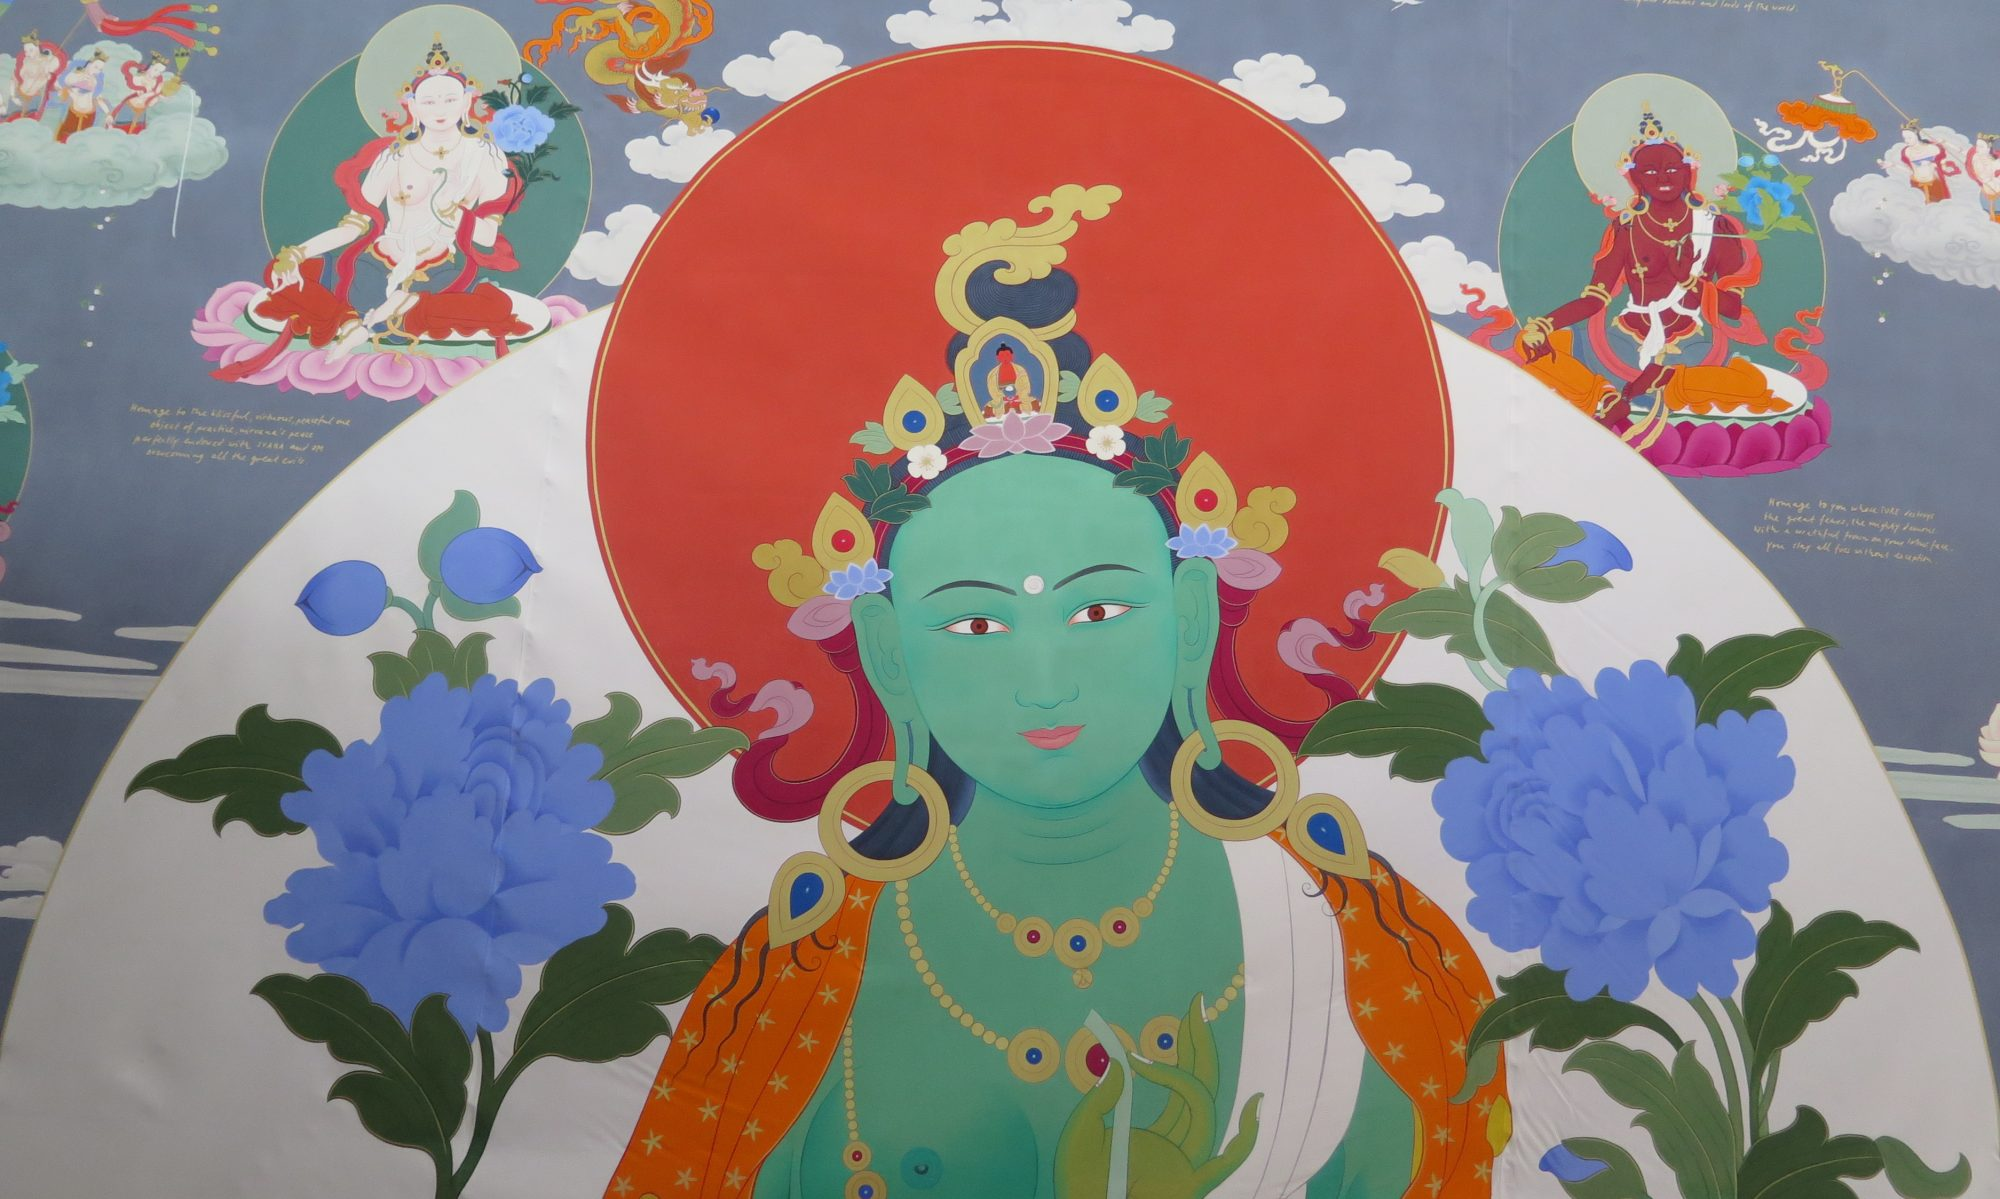 The 21 Taras Thangka